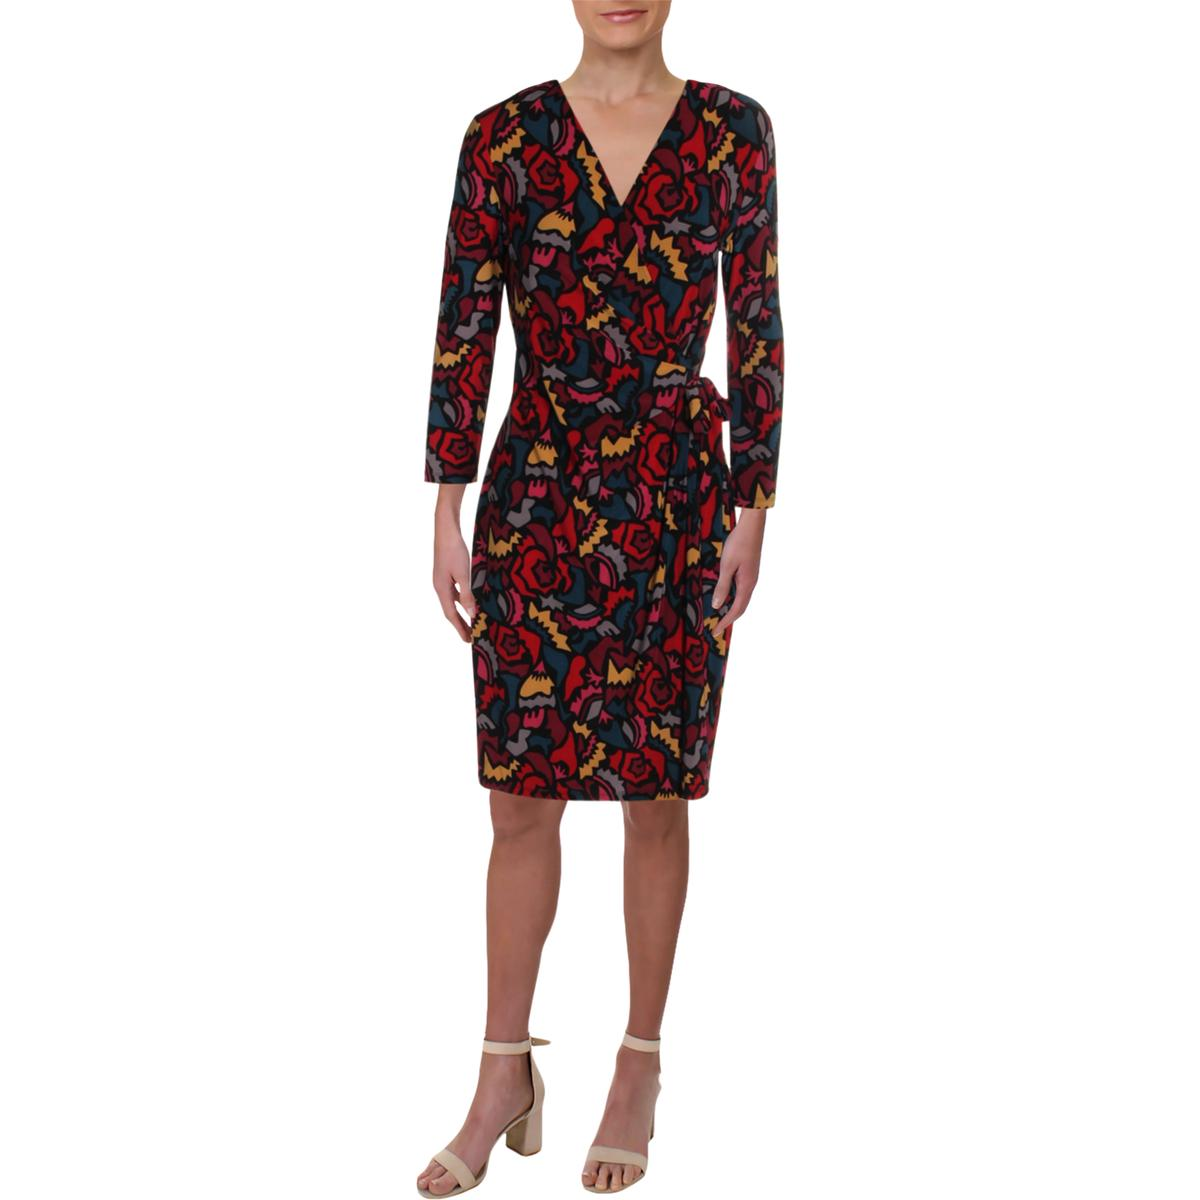 6add9c33abb Details about Anne Klein Womens Red Printed Faux Wrap Night Out Wrap Dress  M BHFO 9877